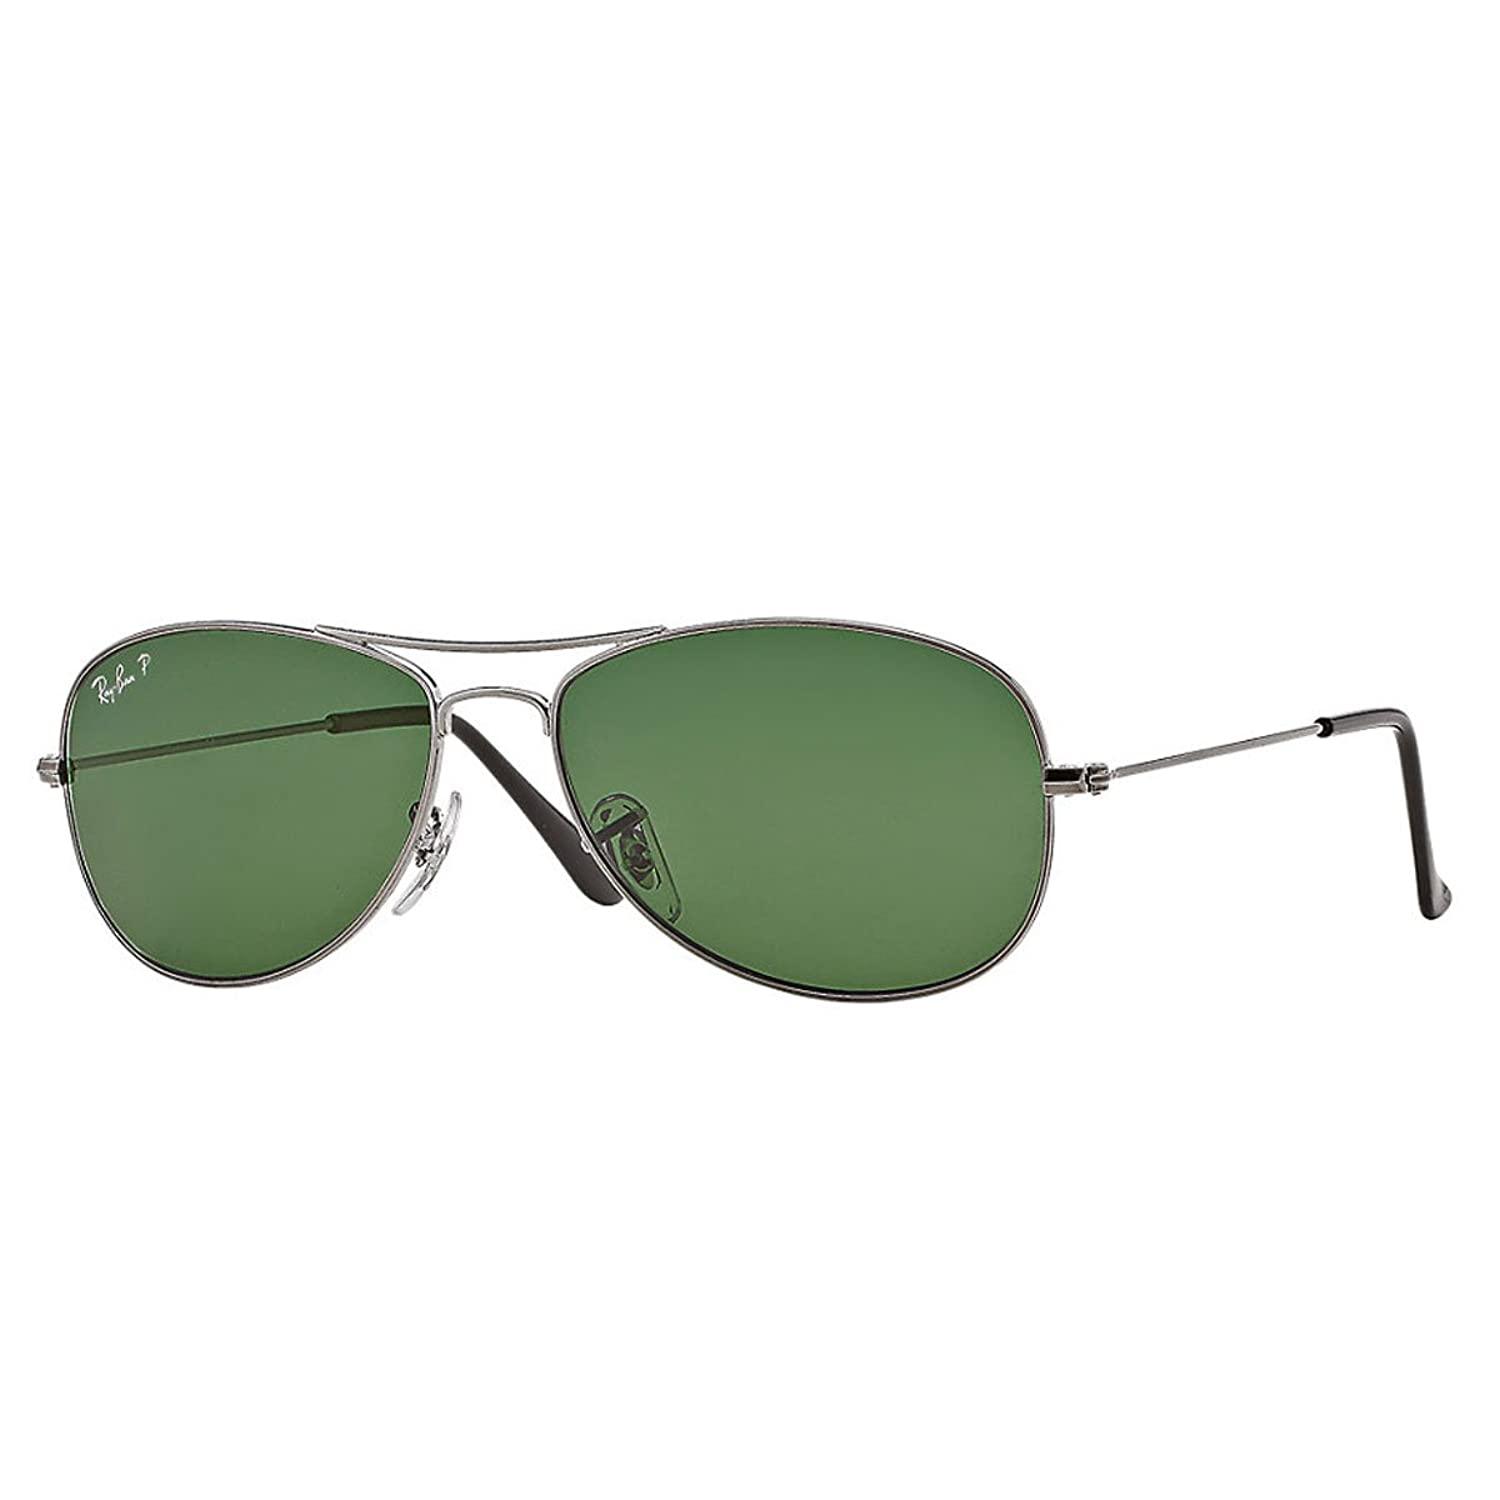 ray ban cockpit prescription sunglasses  ray ban men's cockpit aviator sunglasses